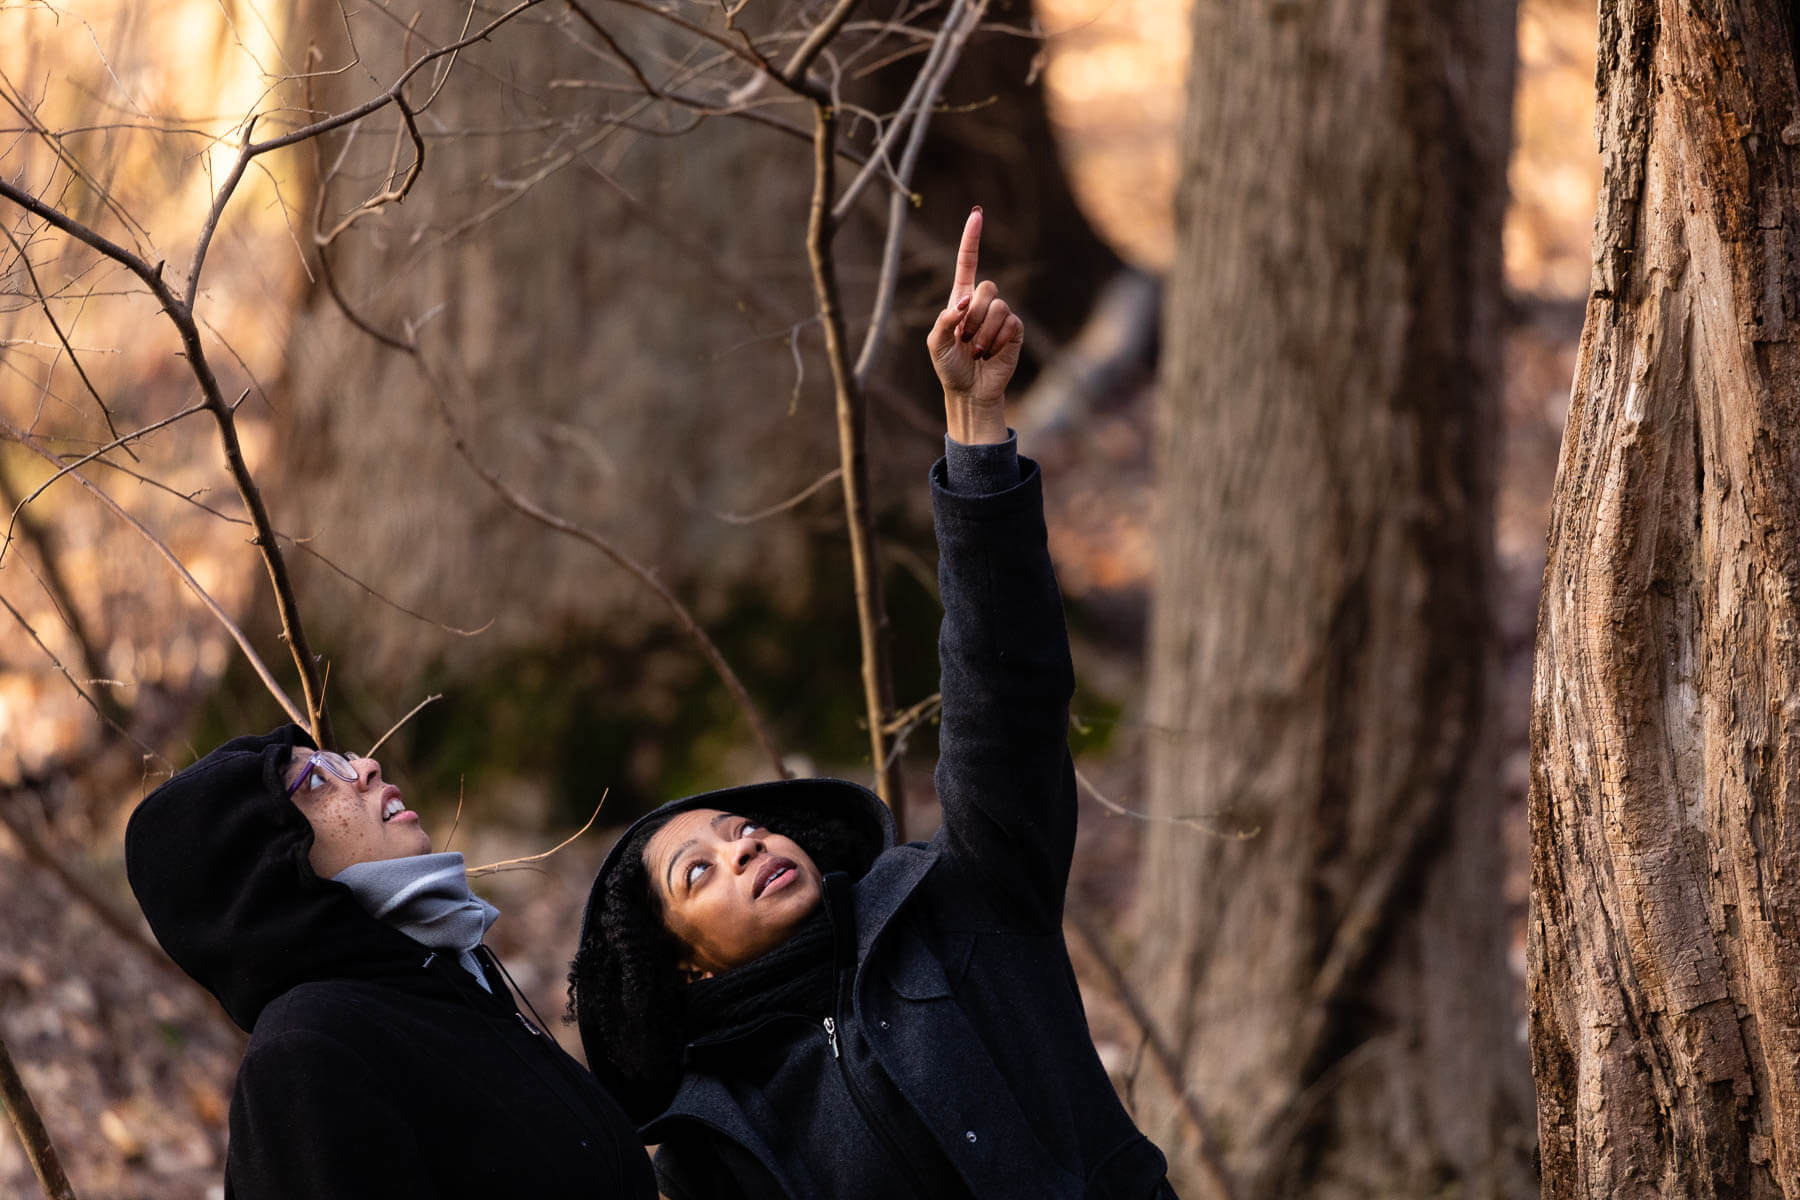 Women look up at a tree